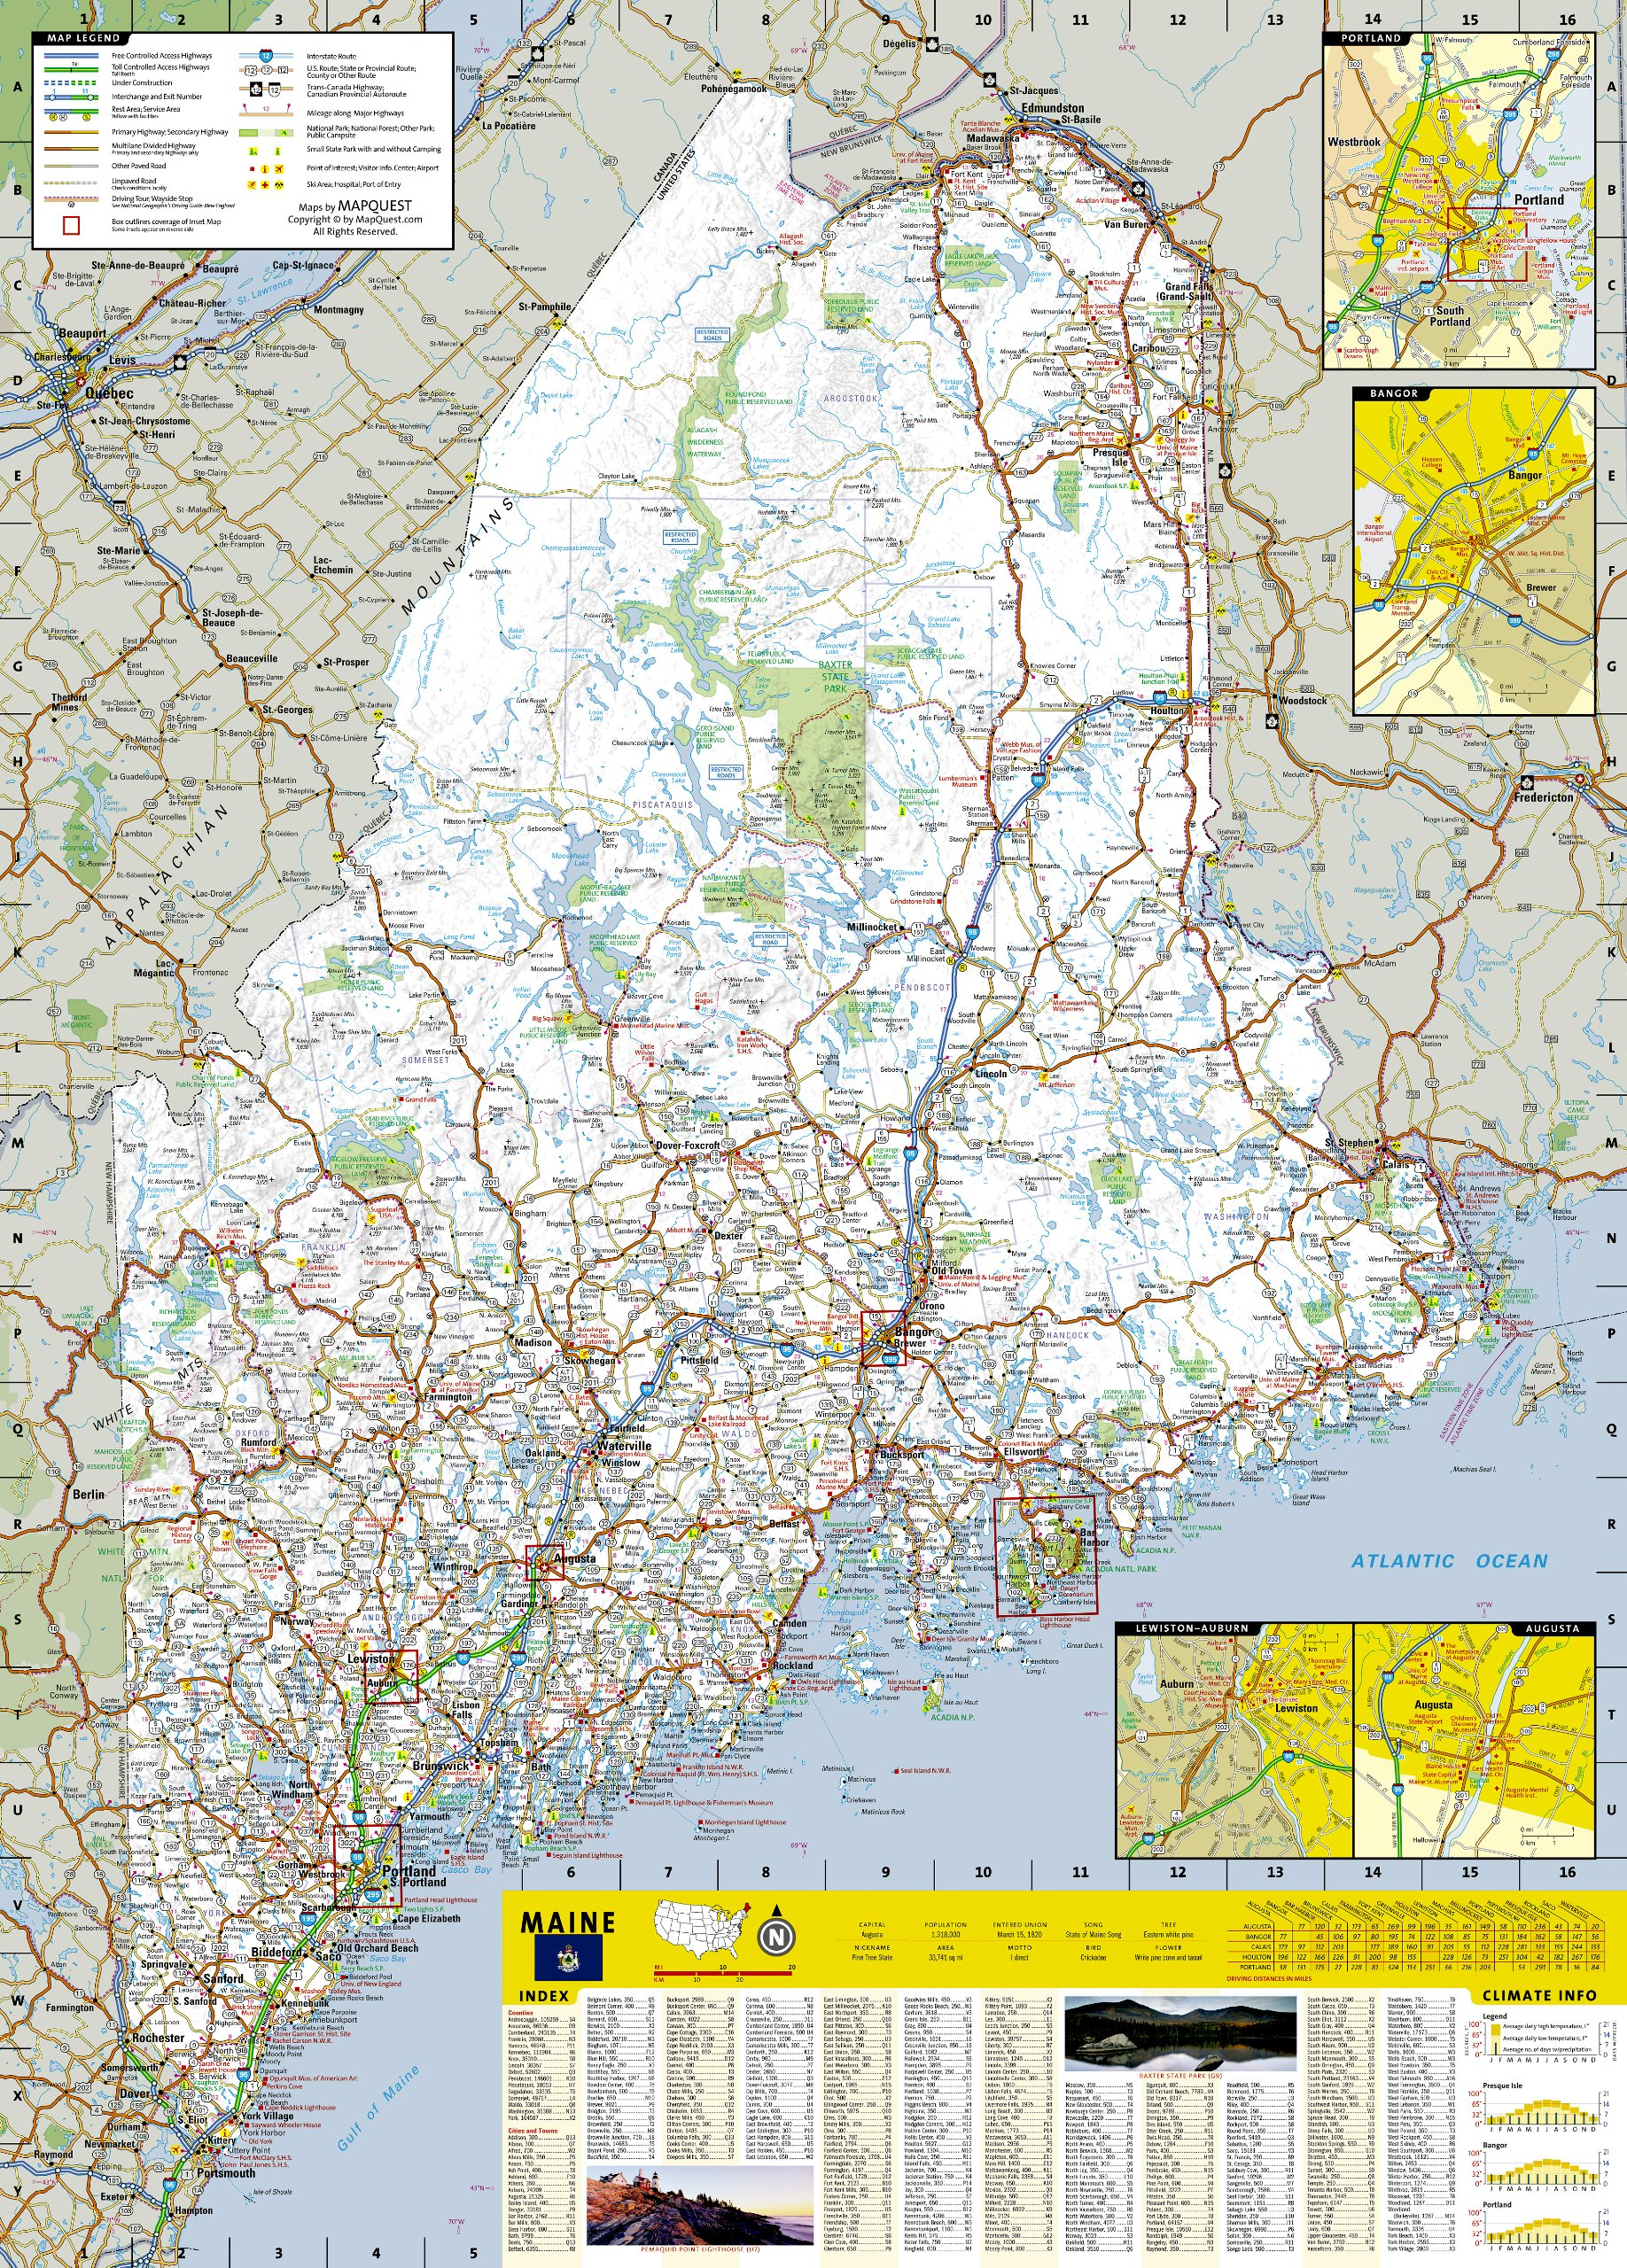 maine (national geographic guide map) national geographic maps  - maine (national geographic guide map) national geographic maps amazoncom books